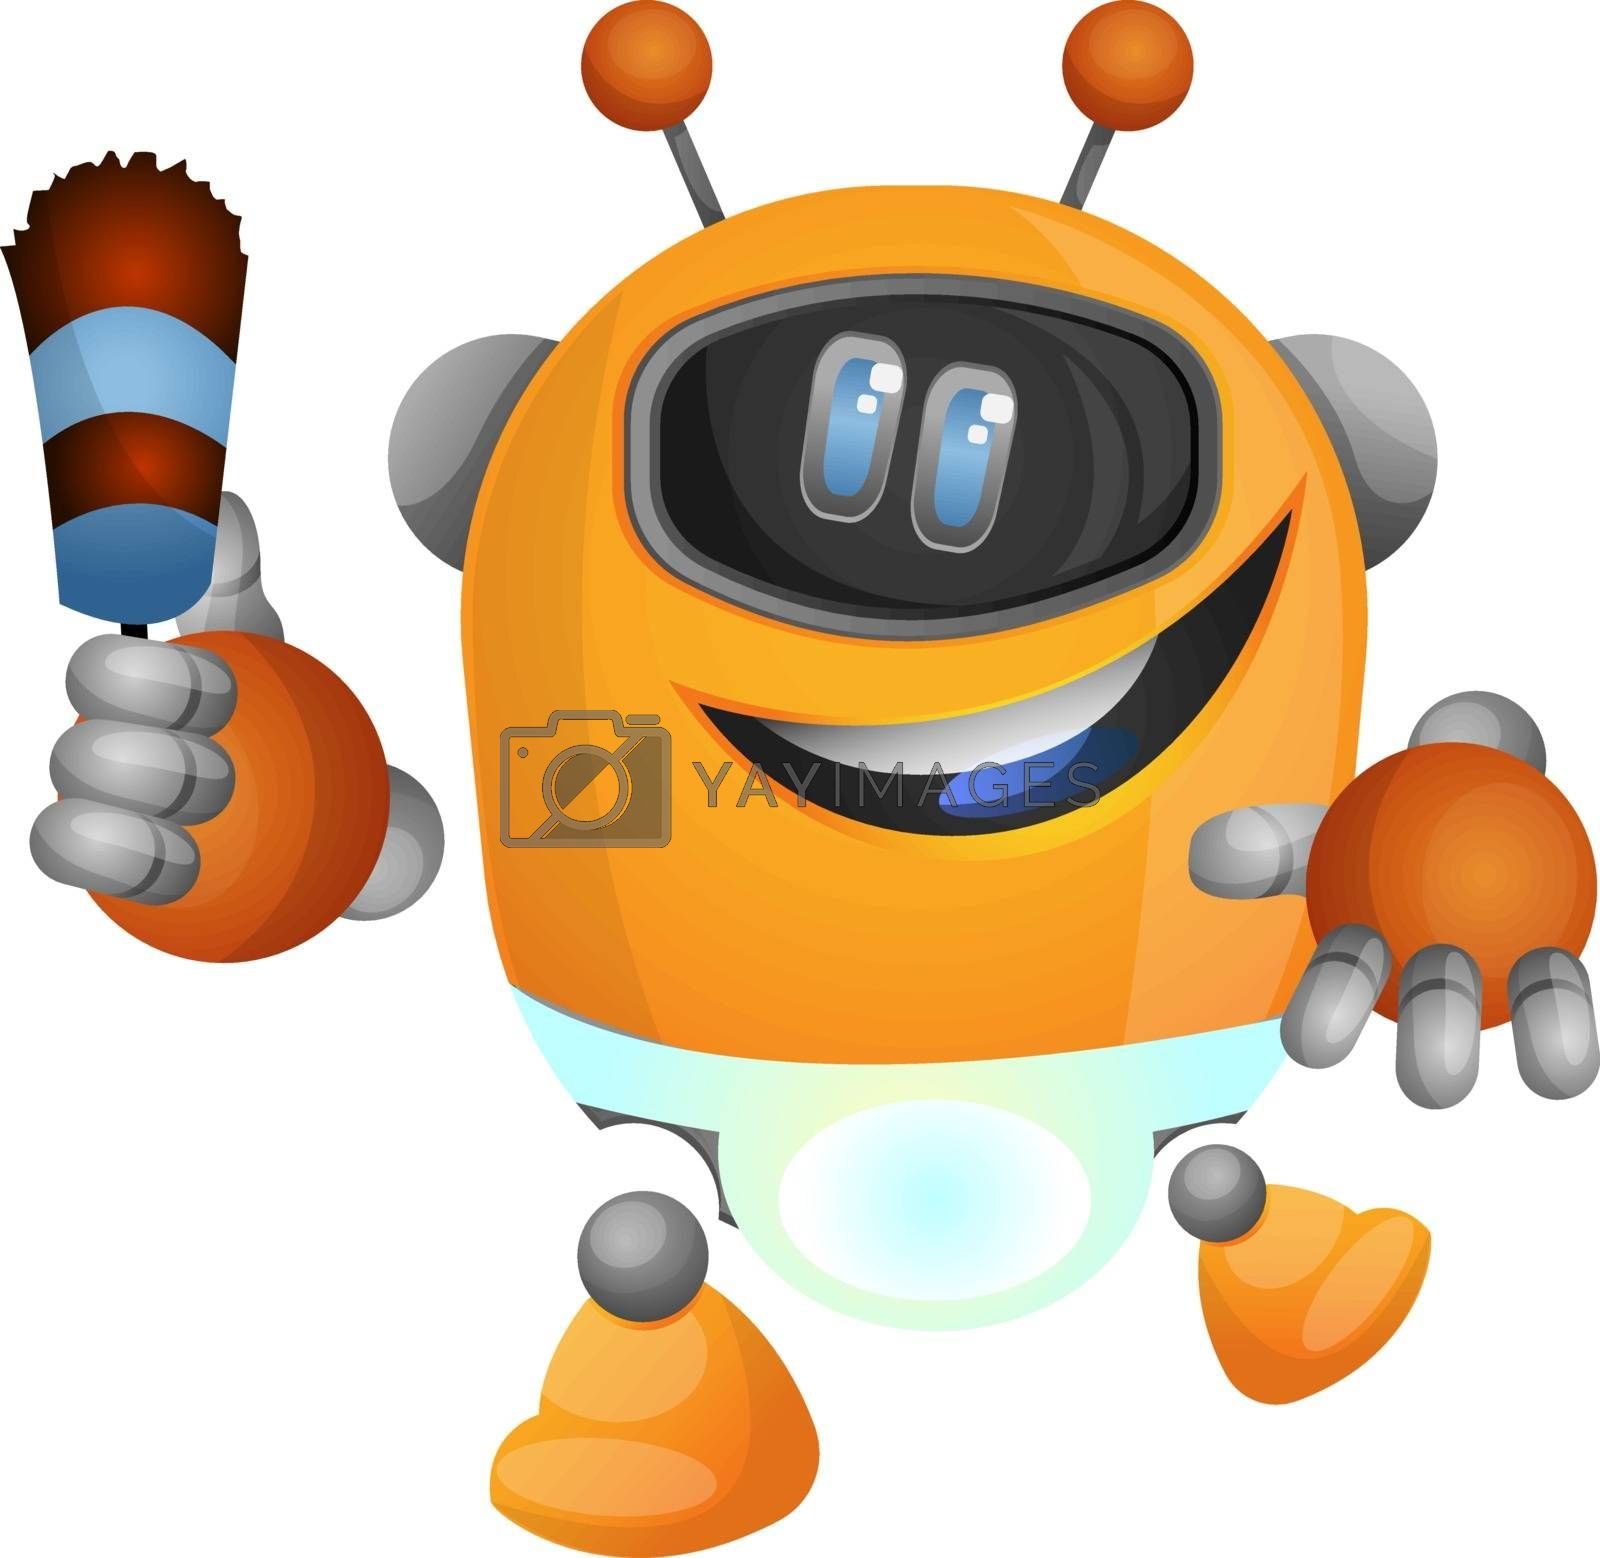 Royalty free image of Housekeeping robot illustration vector on white background by Morphart